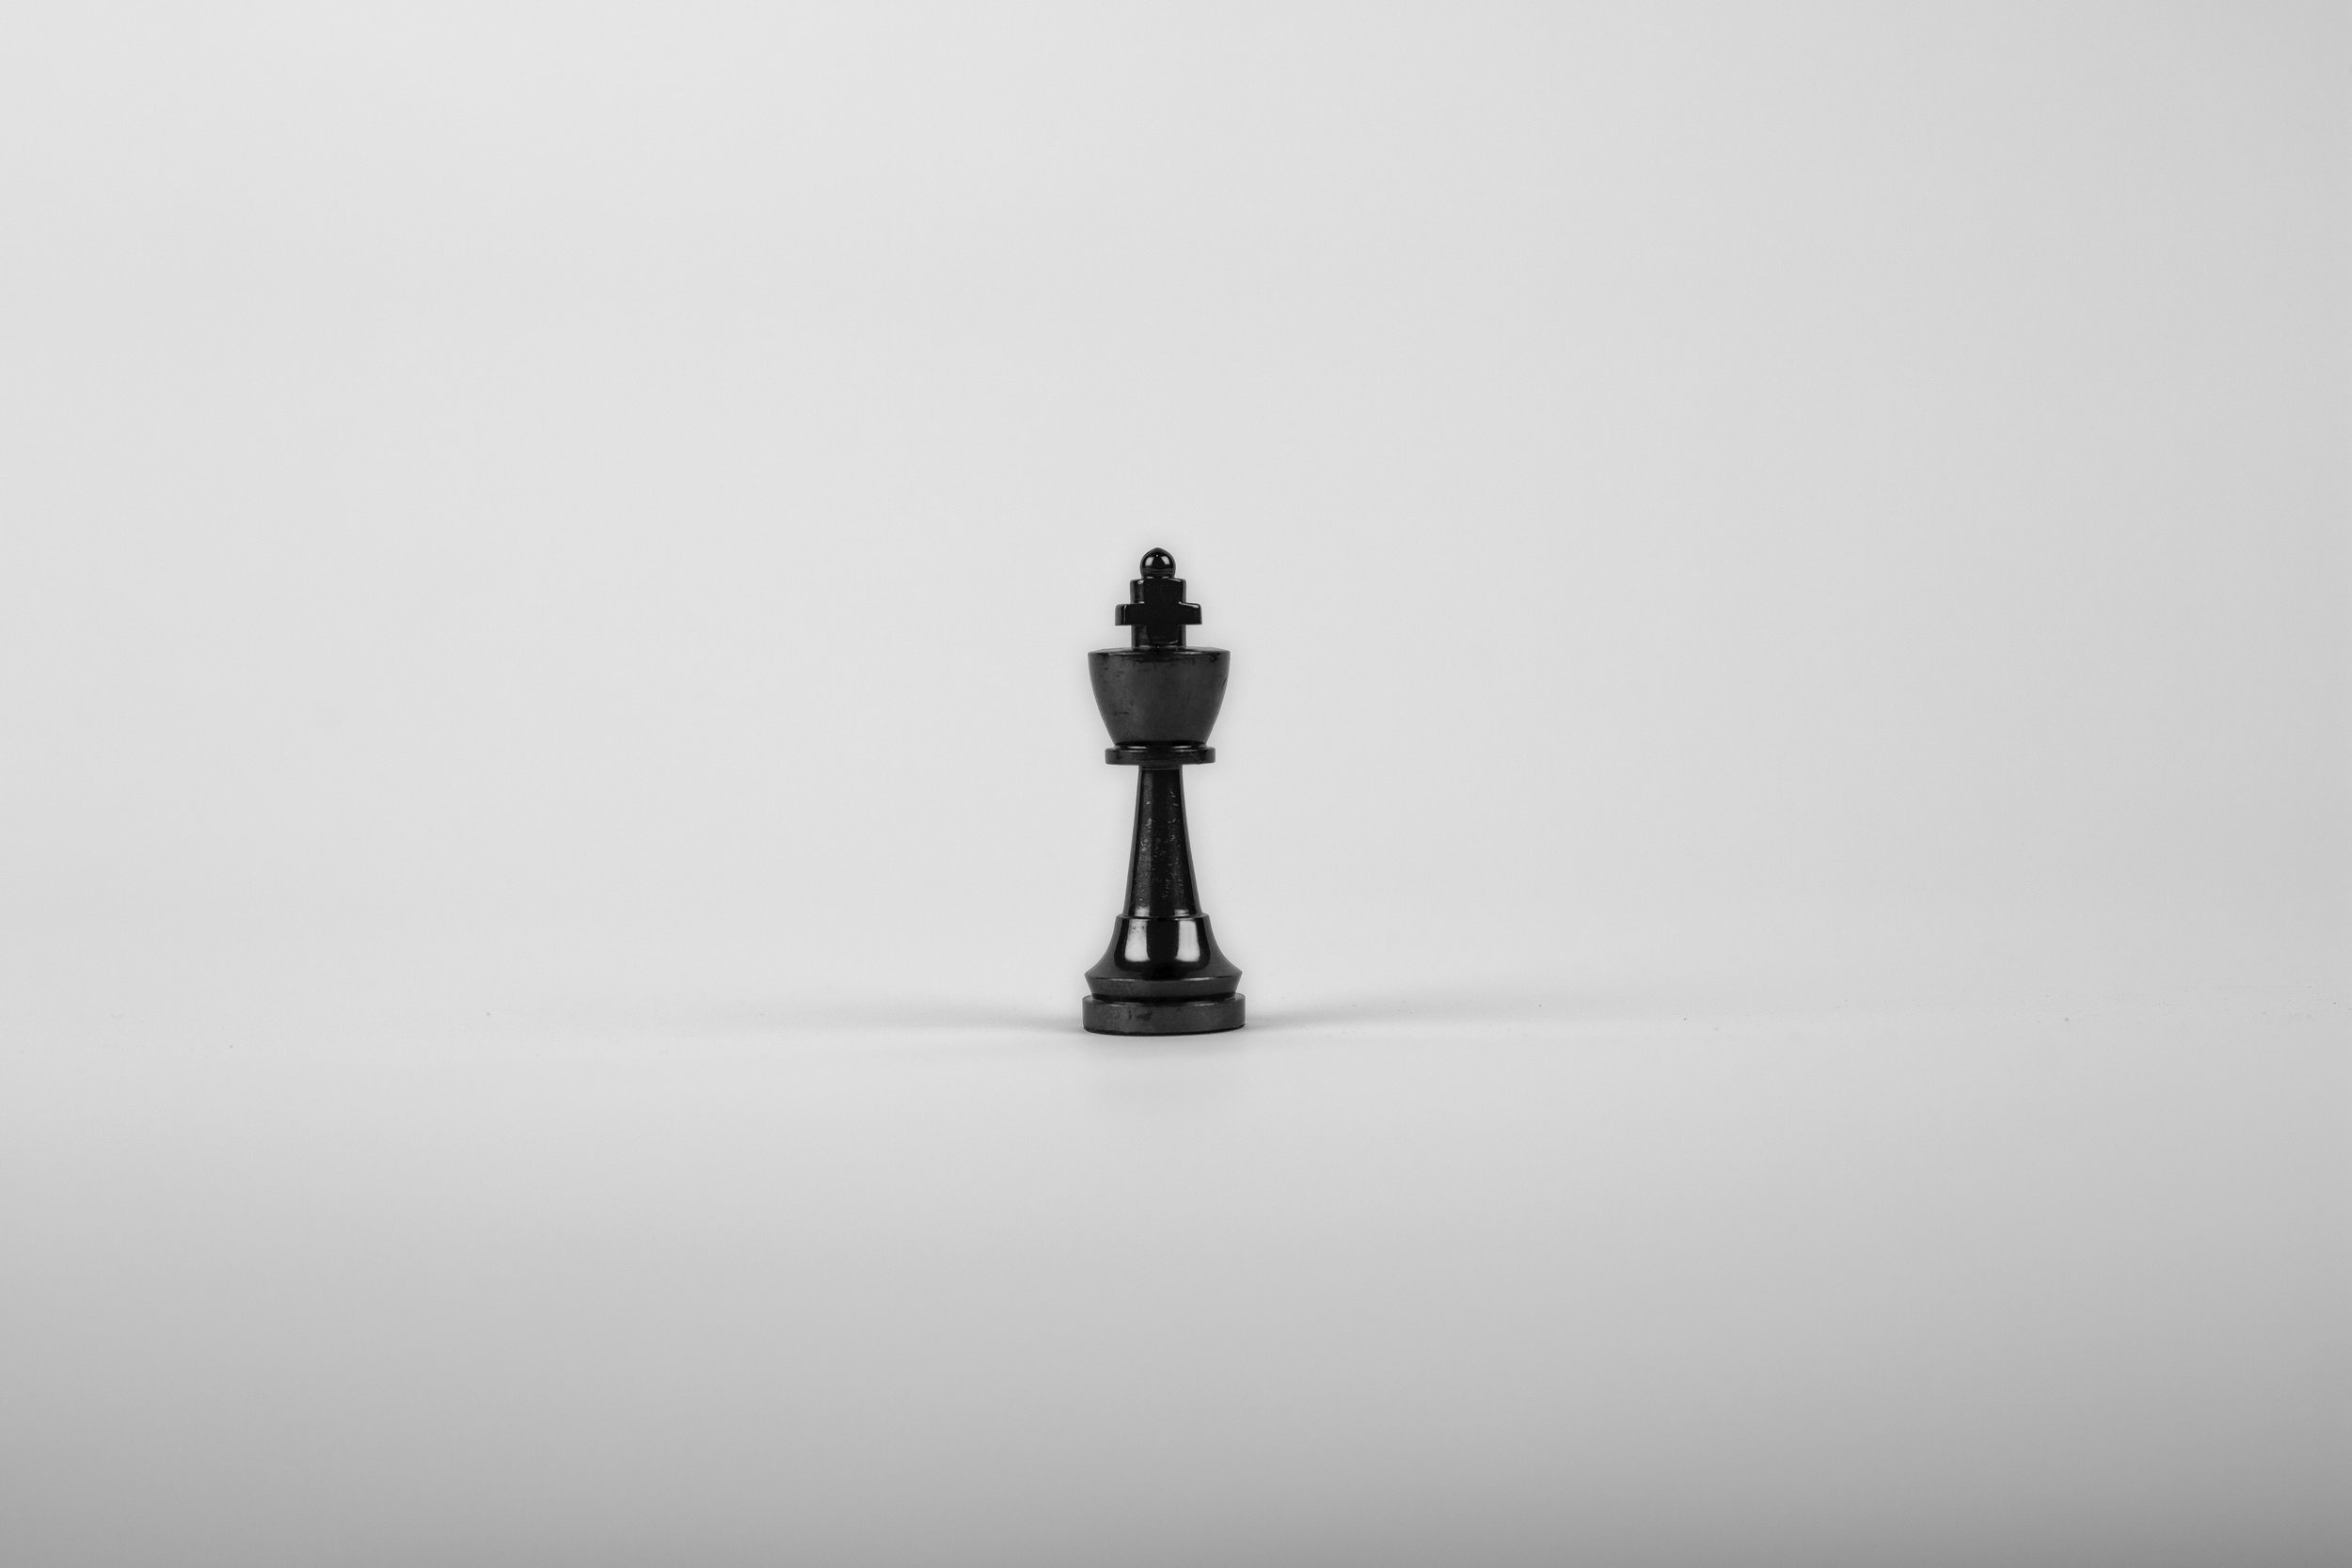 black-and-white-chess-chess-piece-411195.jpg